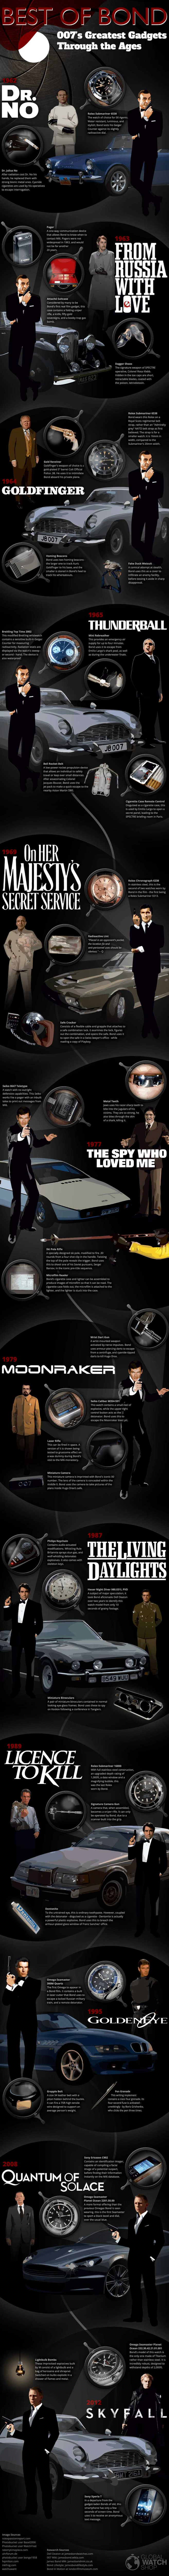 best-of-bond-gadgets-infographics